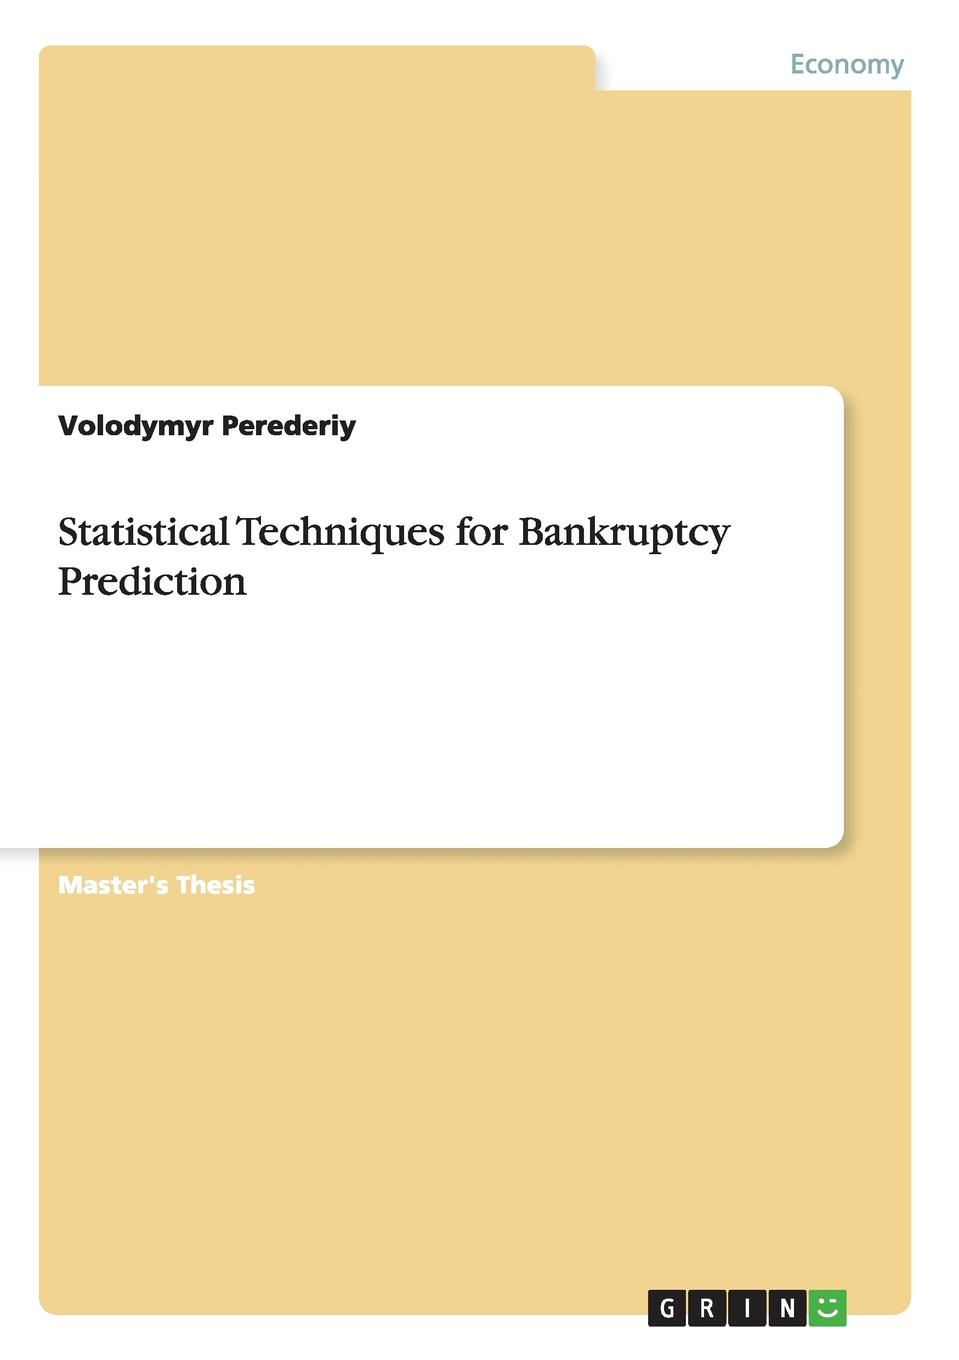 Volodymyr Perederiy Statistical Techniques for Bankruptcy Prediction edith hotchkiss corporate financial distress and bankruptcy predict and avoid bankruptcy analyze and invest in distressed debt